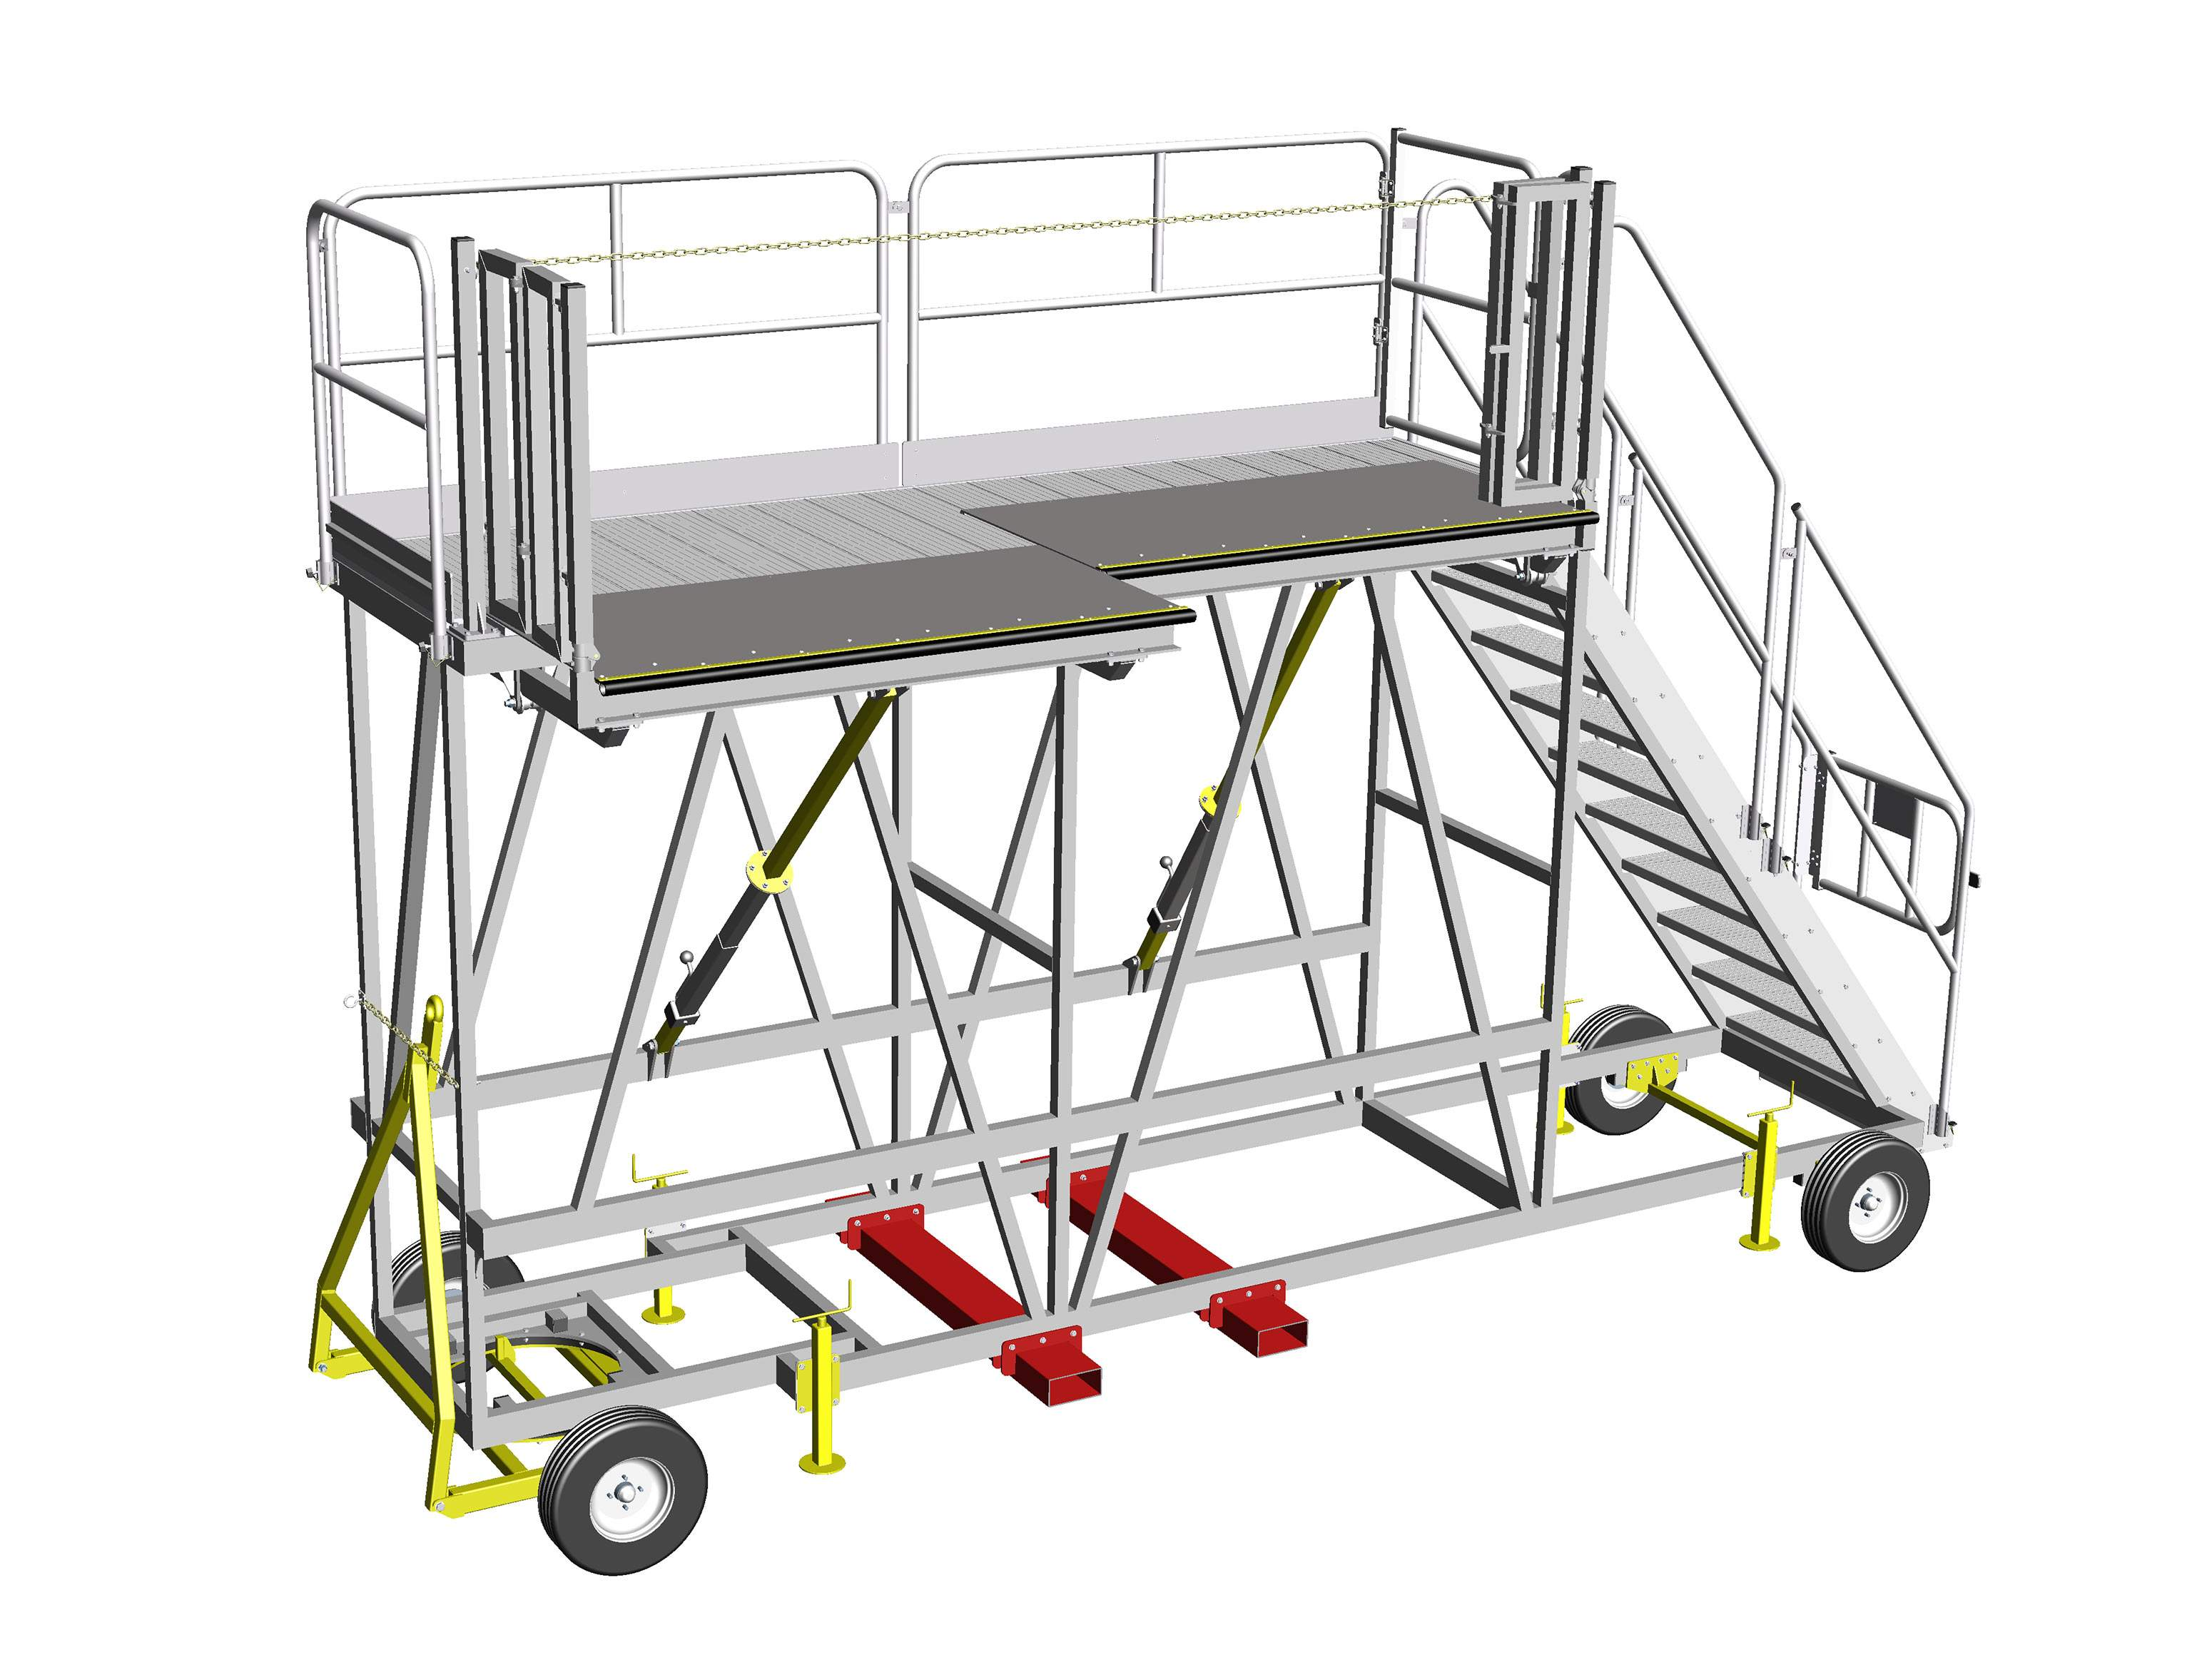 Bespoke Towable Carriage Access System Design